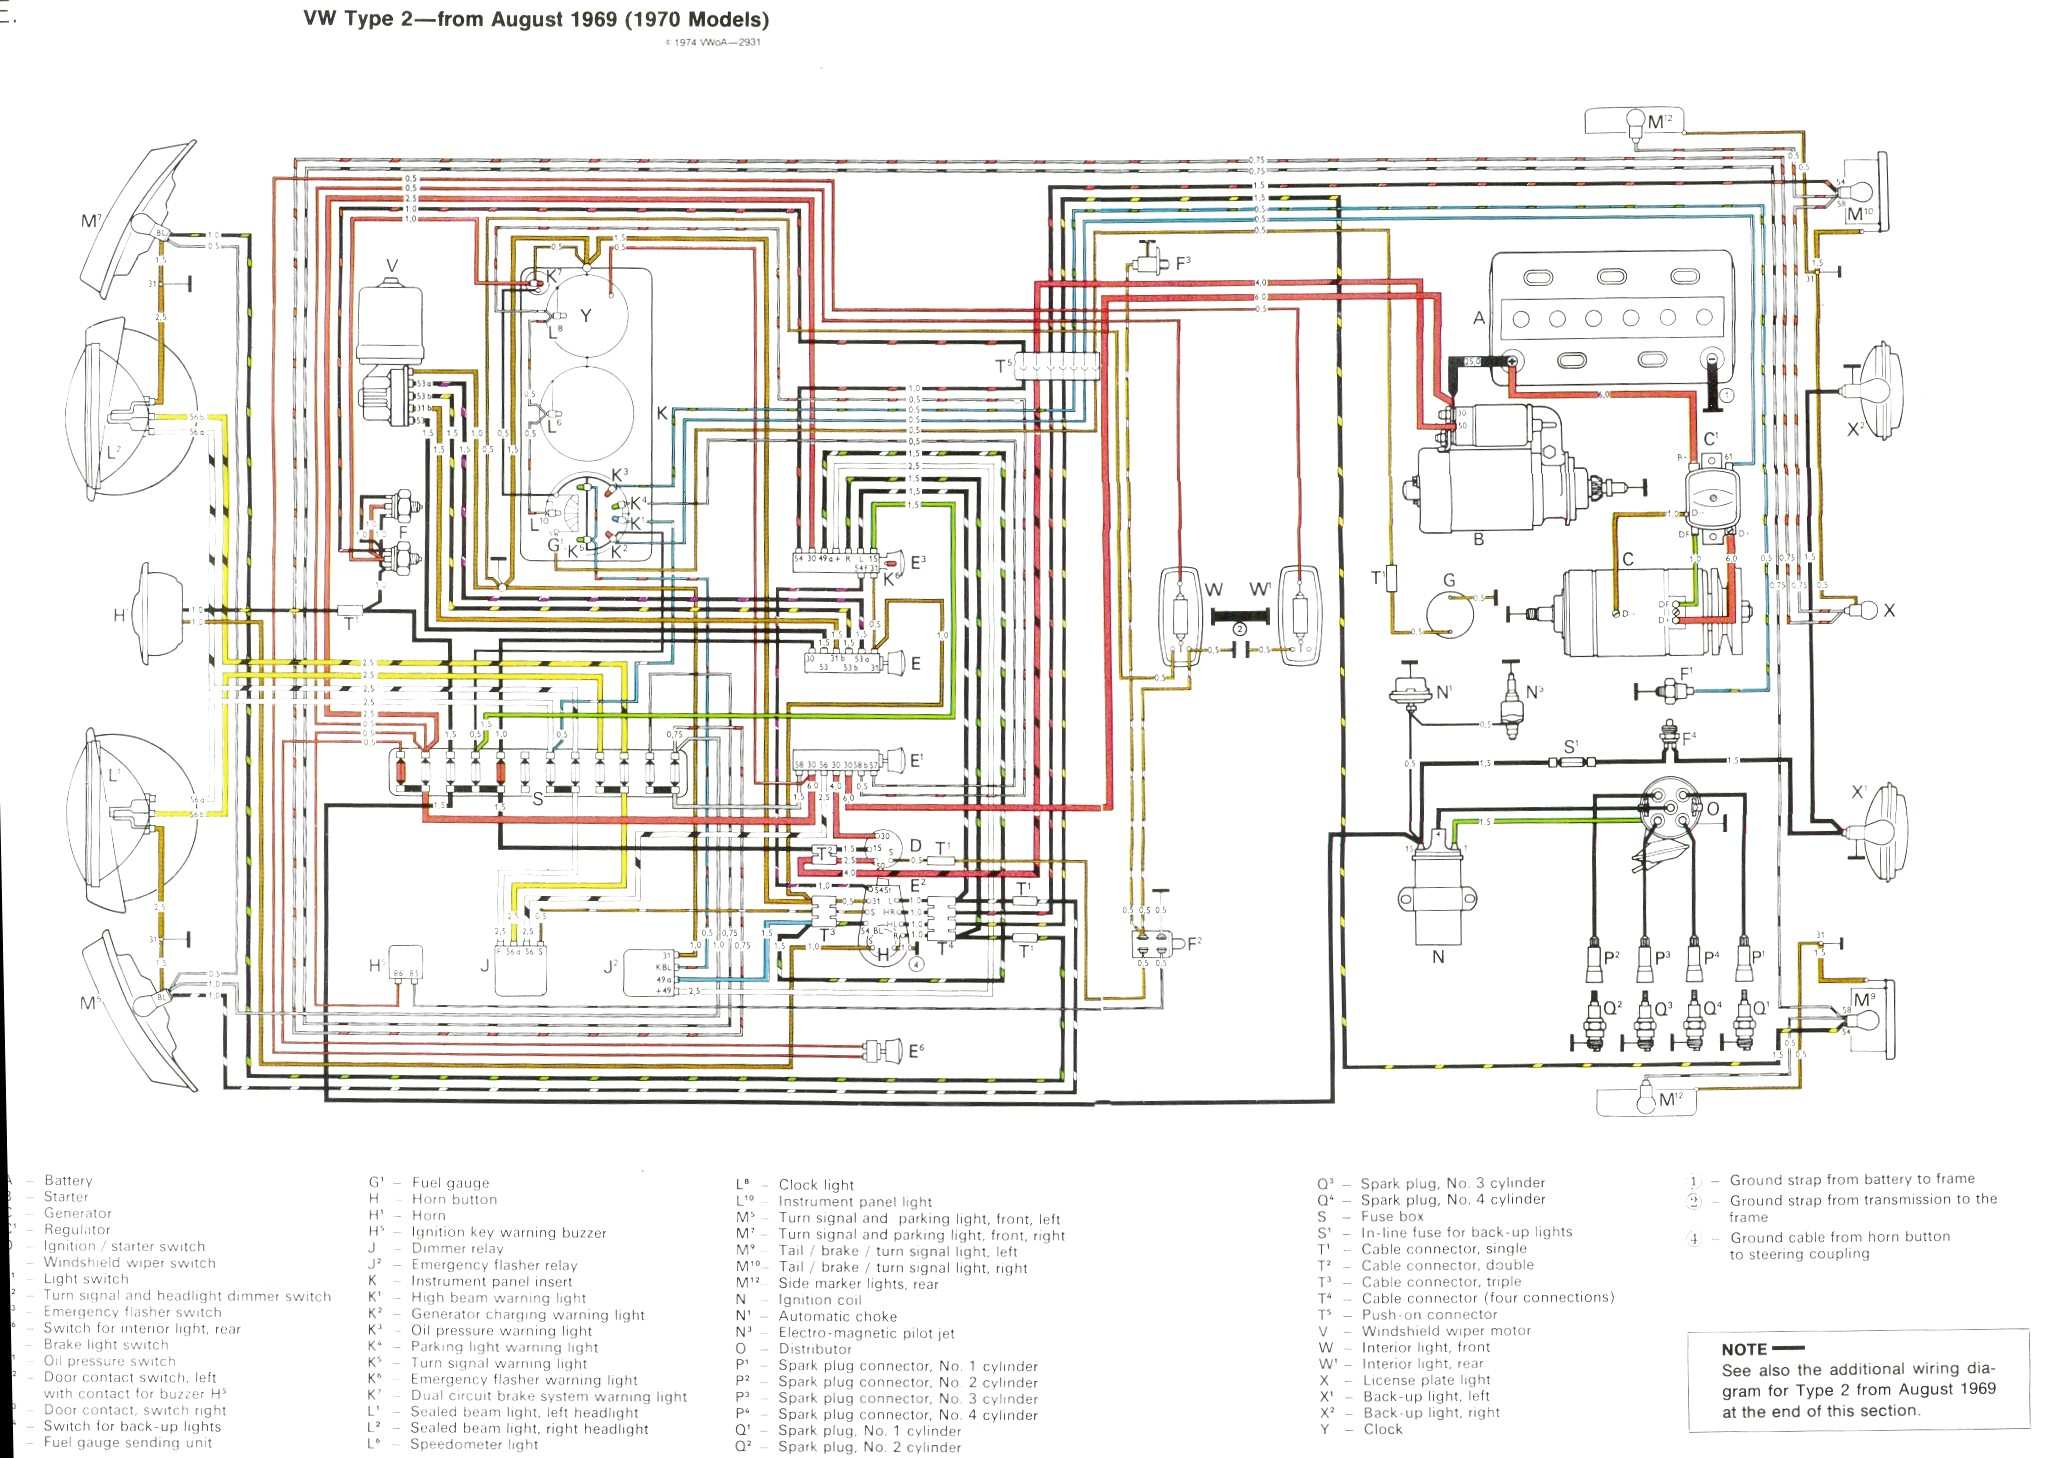 70 Cj5 Wiring | Wiring Diagram Jeep Cj Dash Wiring Diagram on